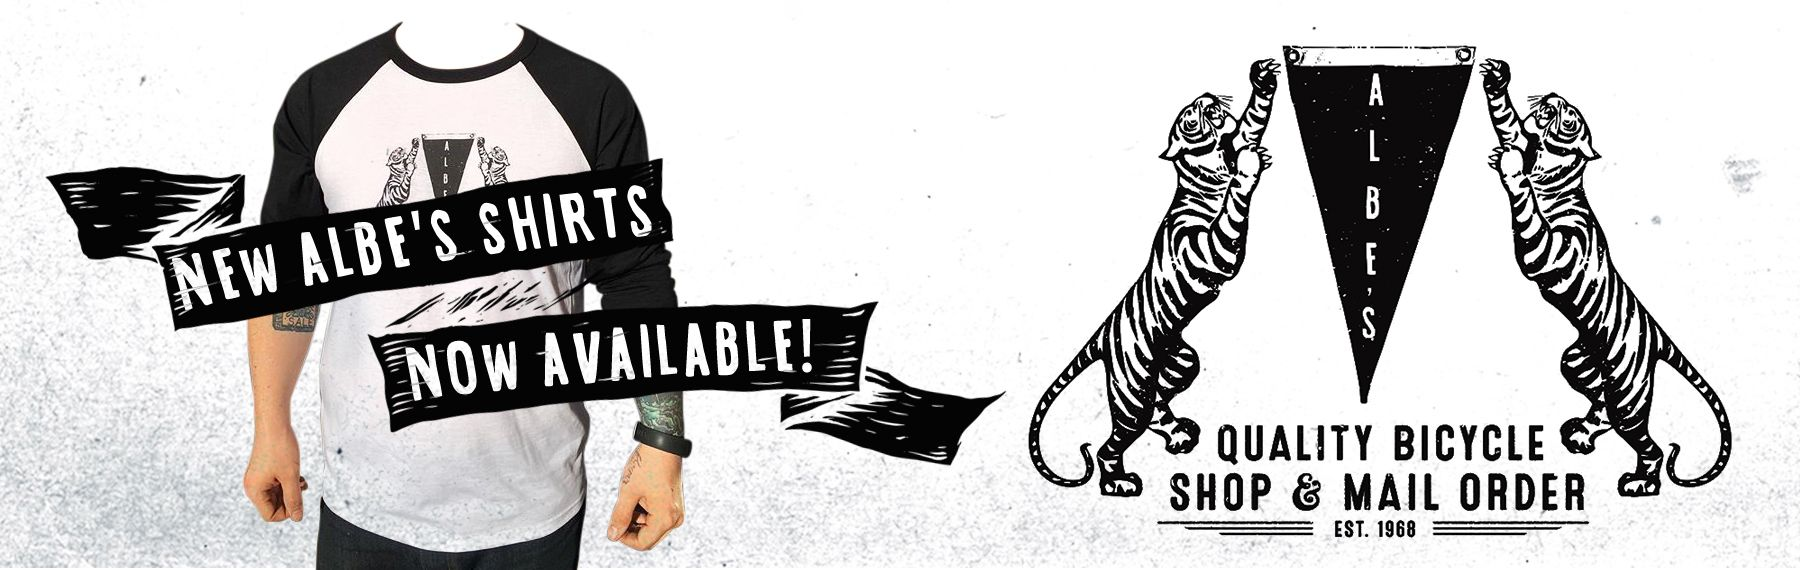 New Albe's BMX Tiger Shirts now available